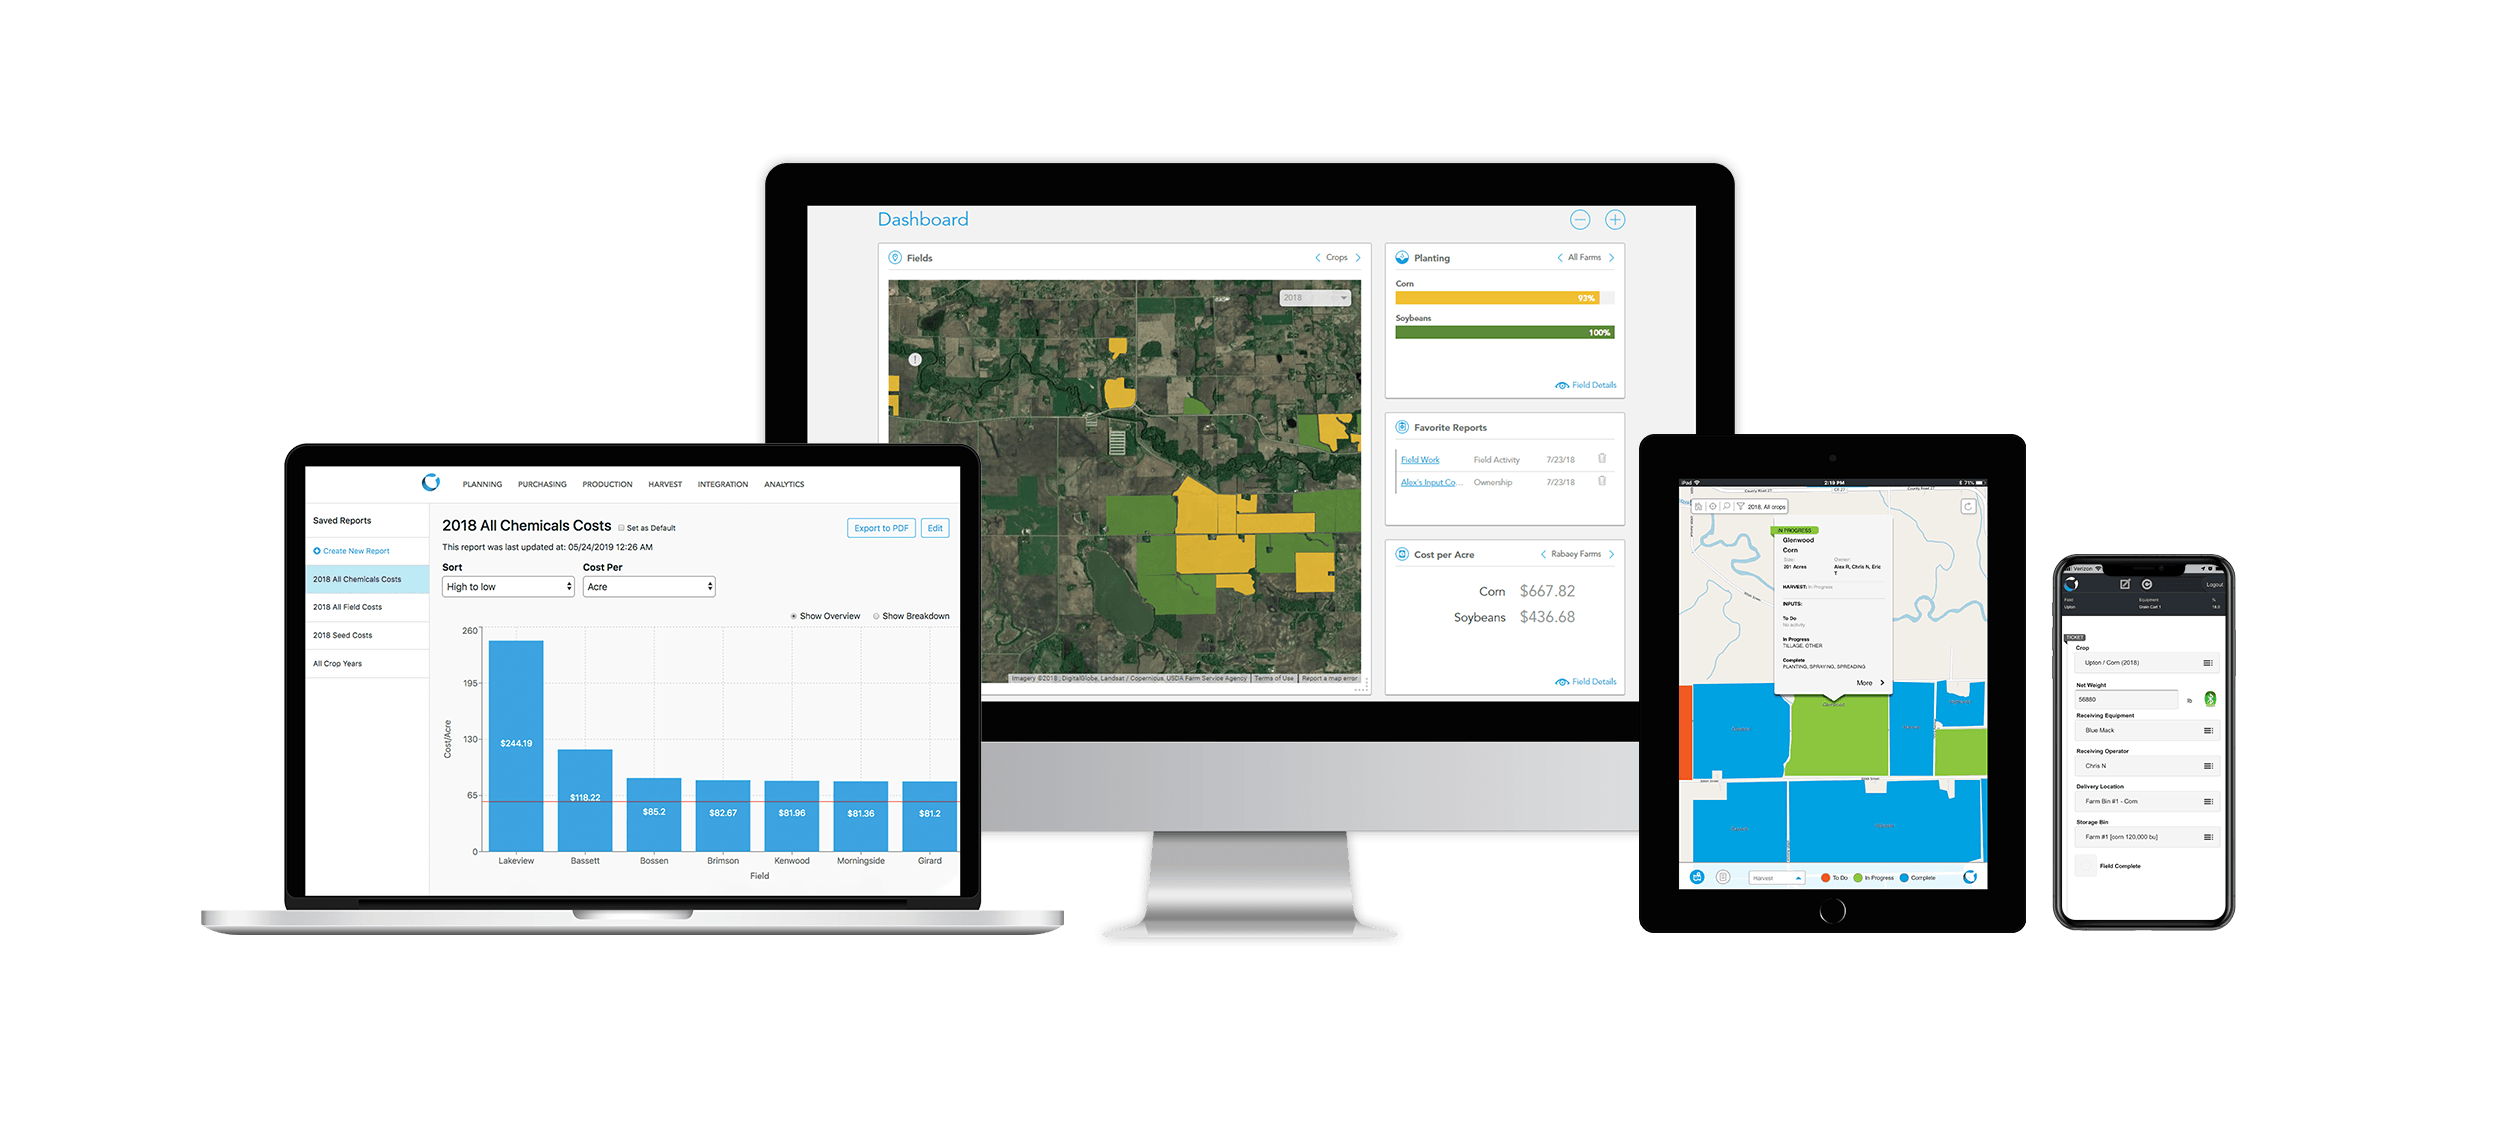 Conservis_Farm_Management_Software_DashBoard_Devices